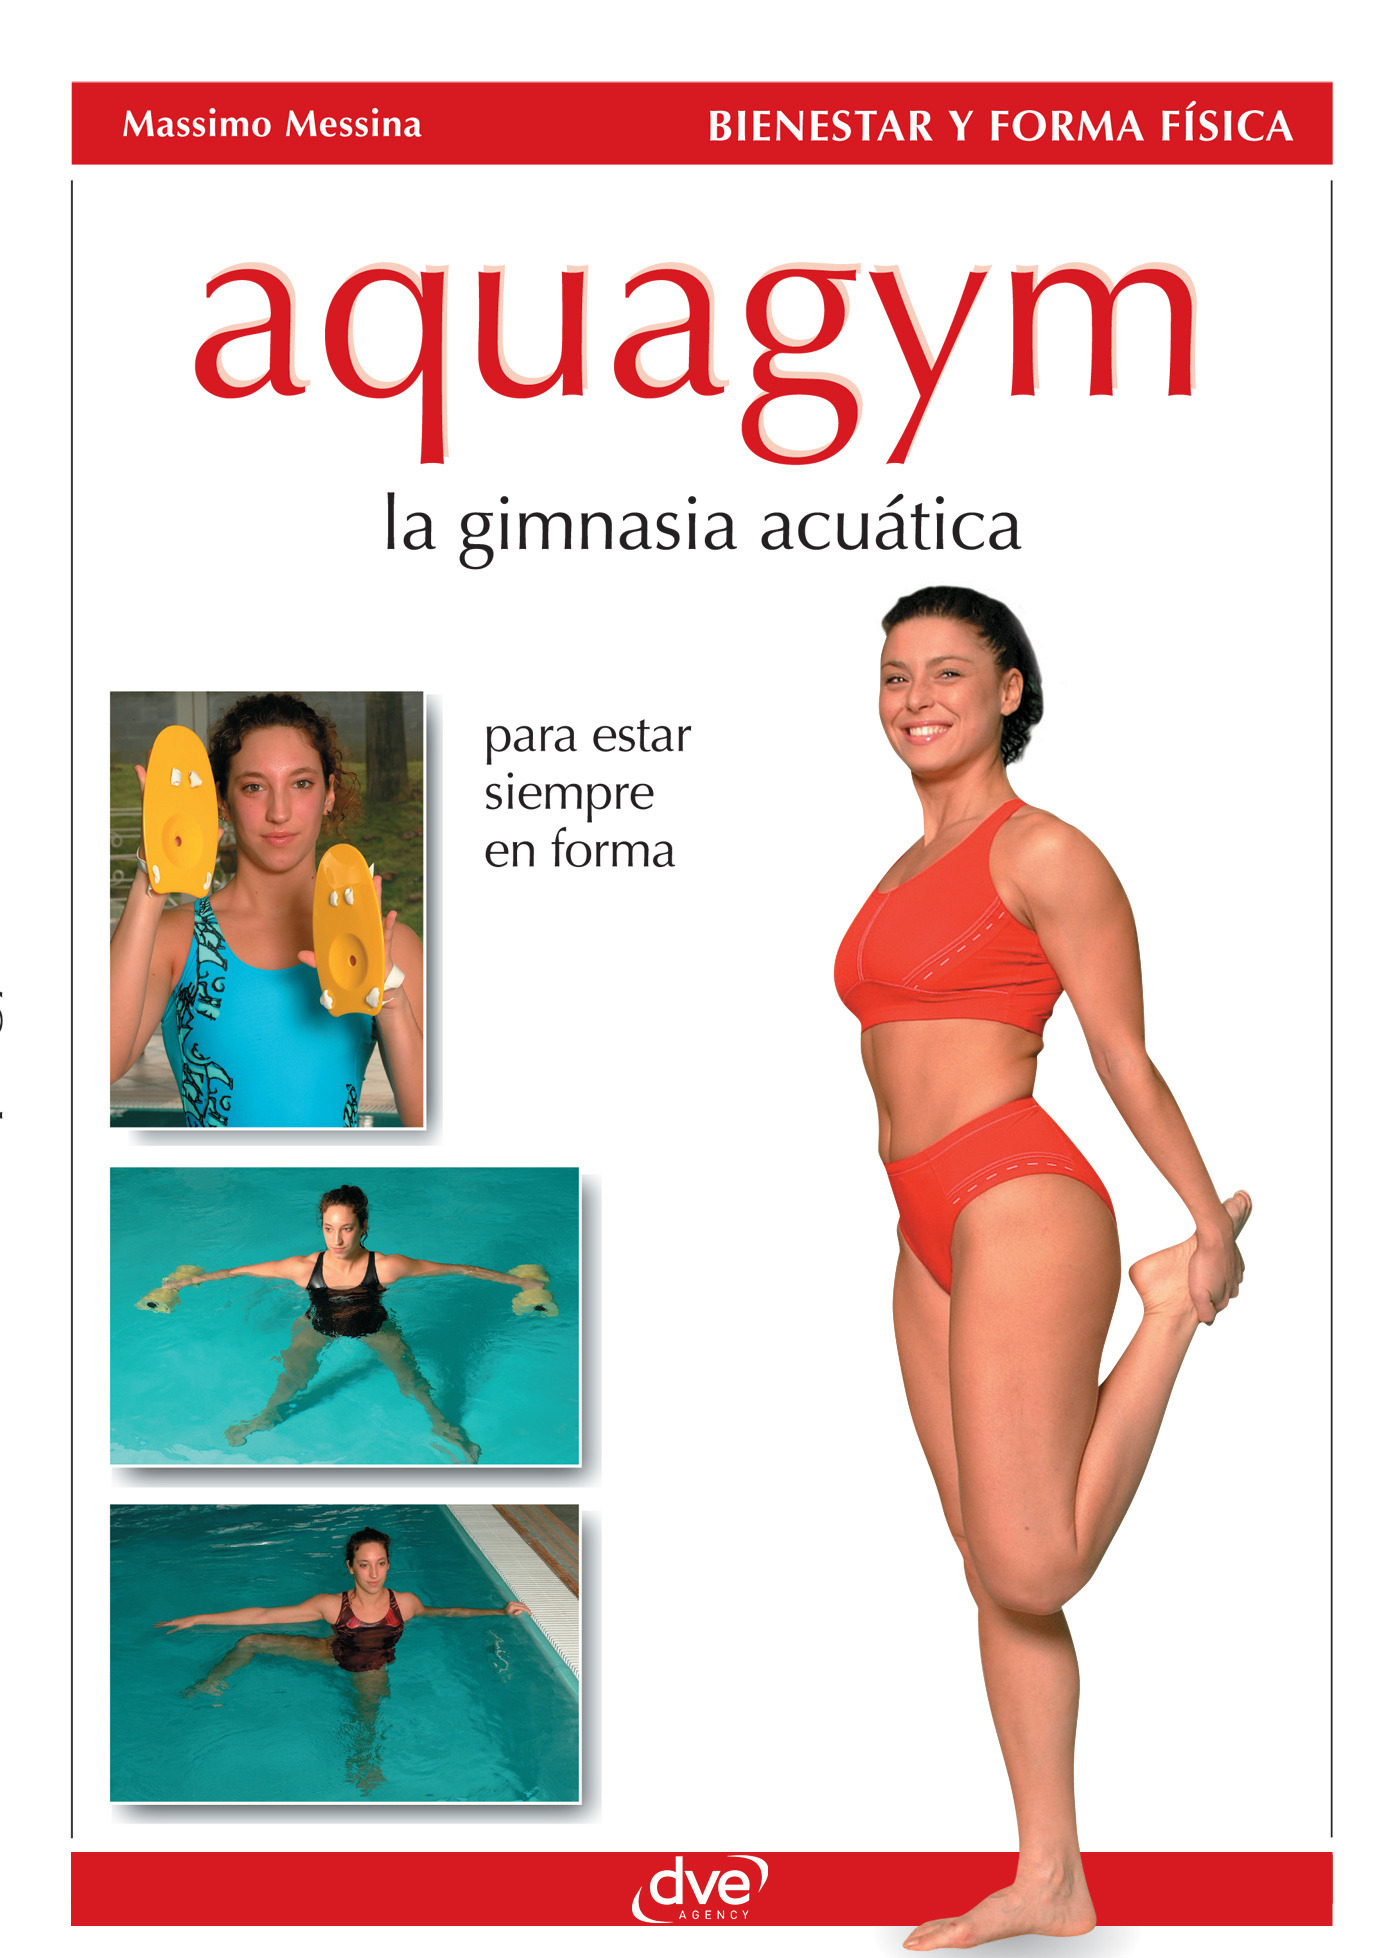 Messina, Massimo - Aquagym, ebook